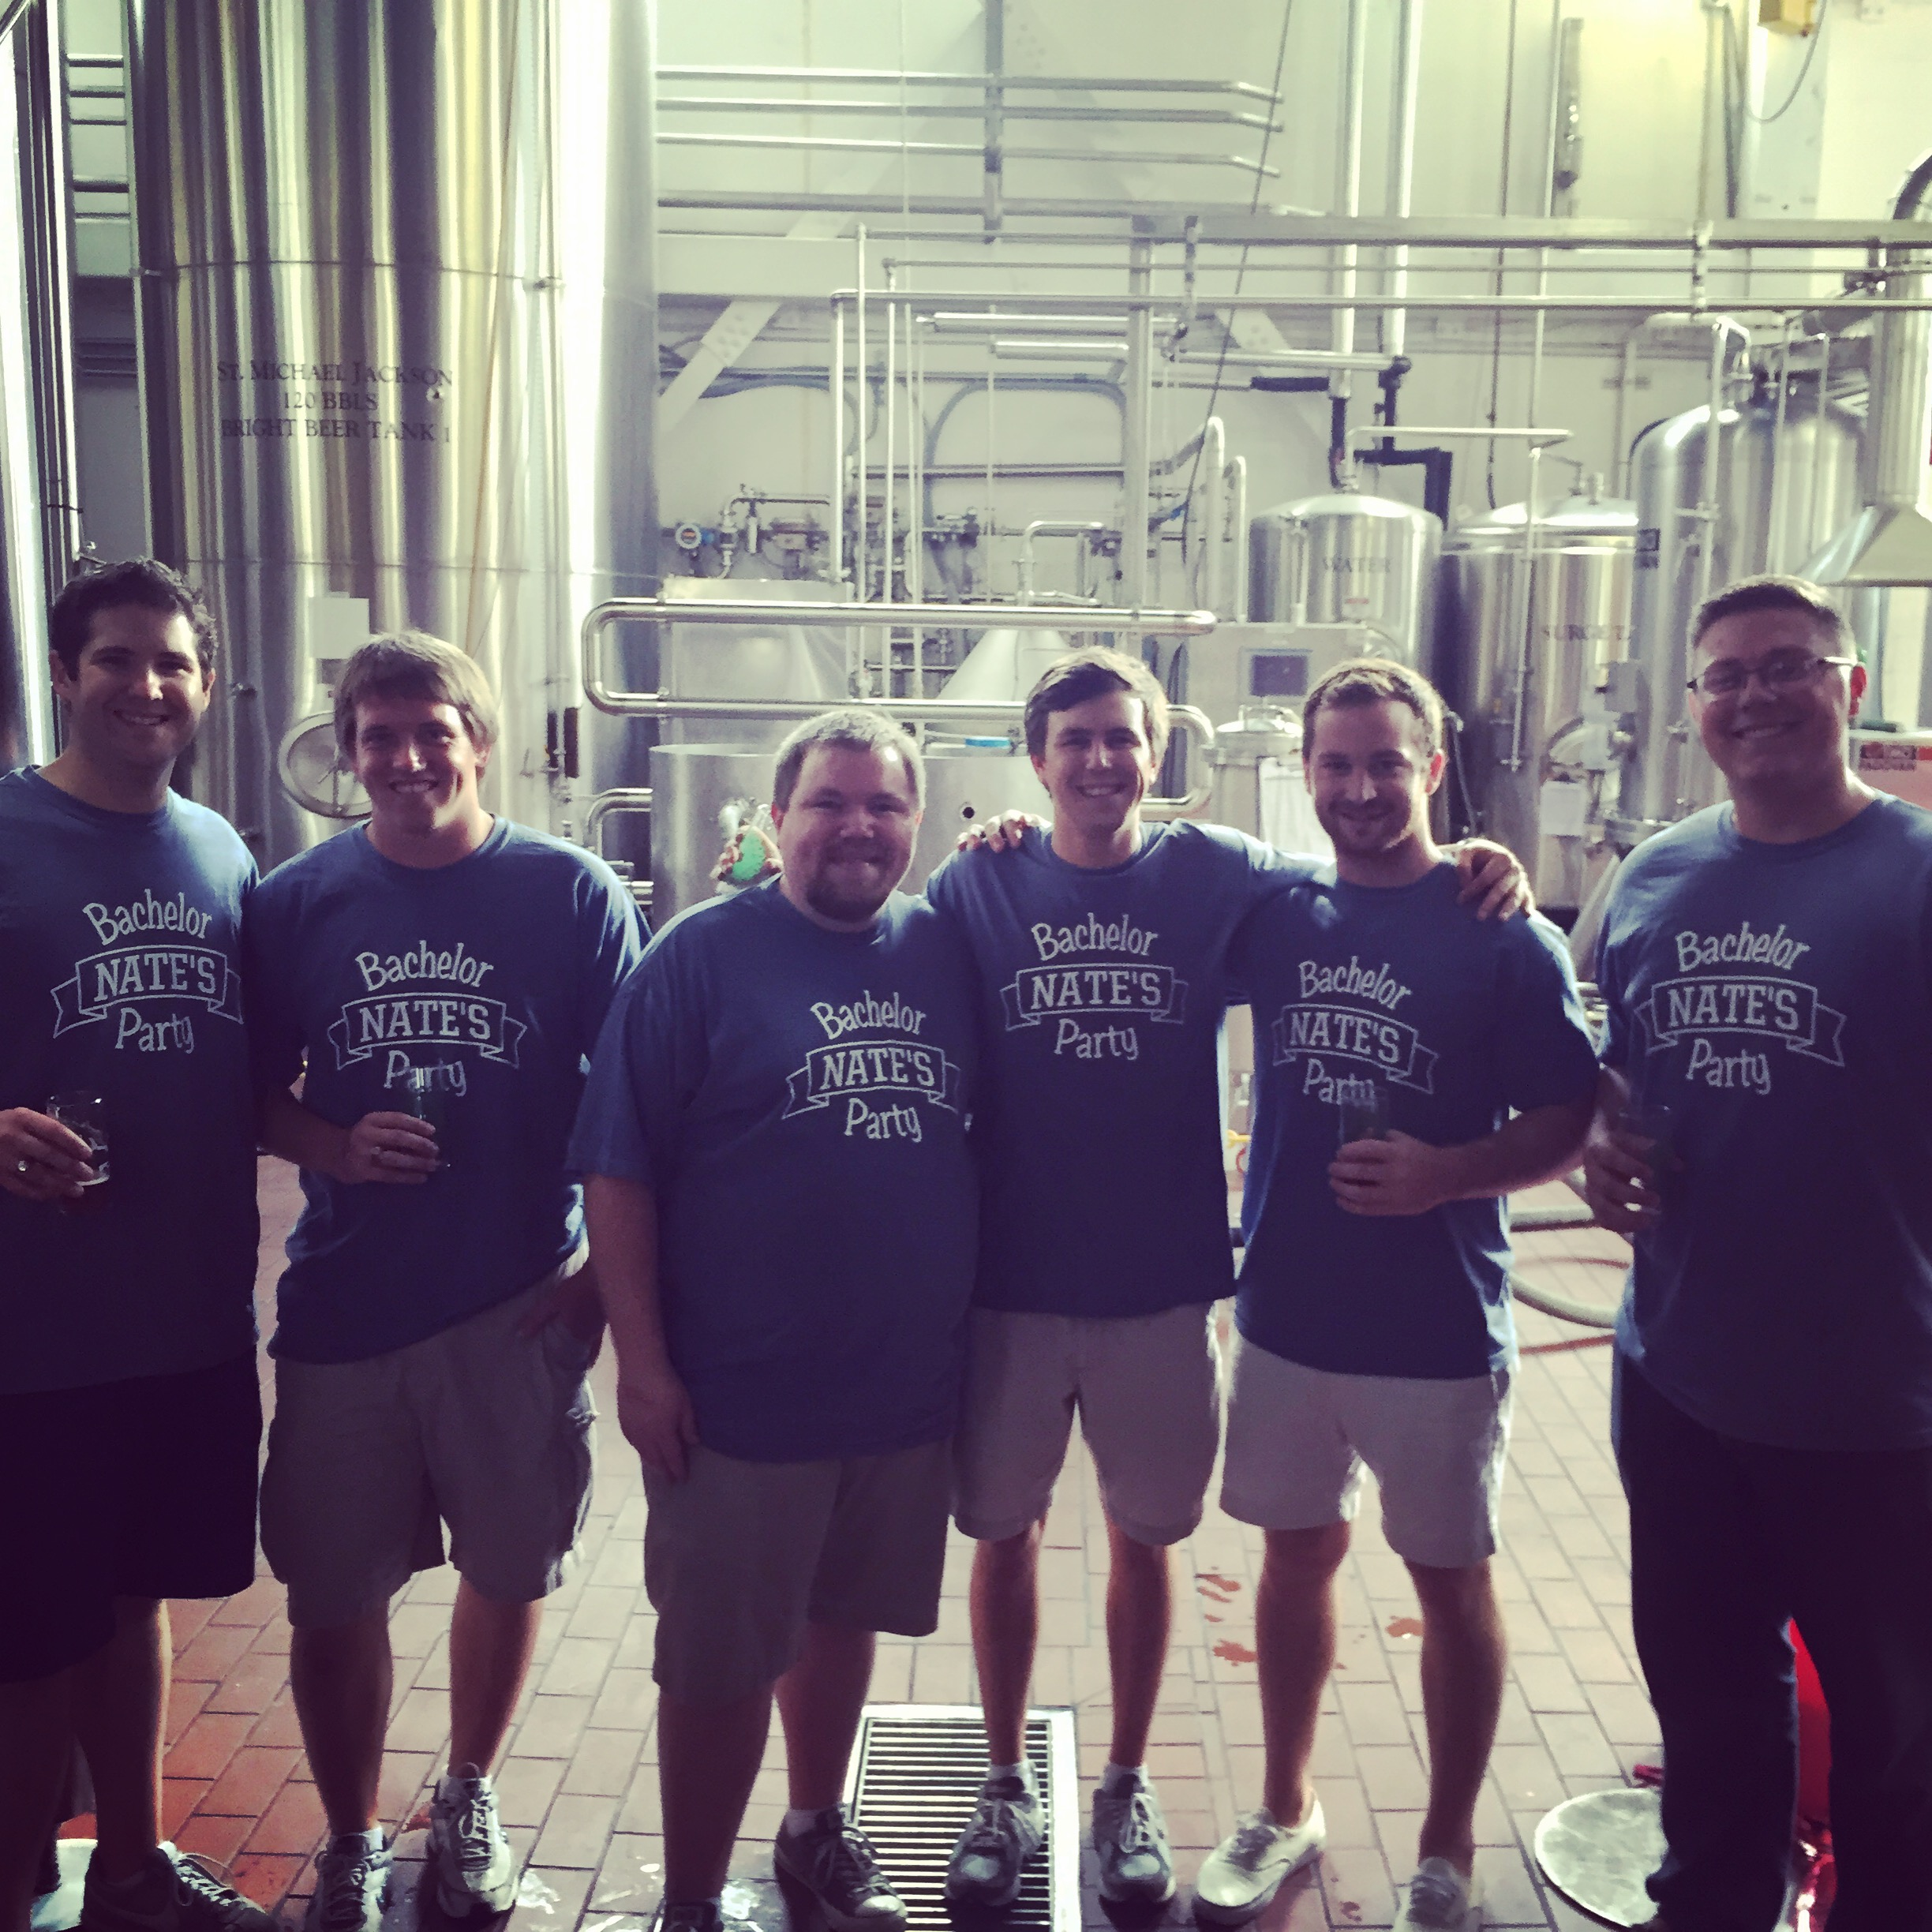 Custom T Shirts For Bachelors At The Brewery Shirt Design Ideas